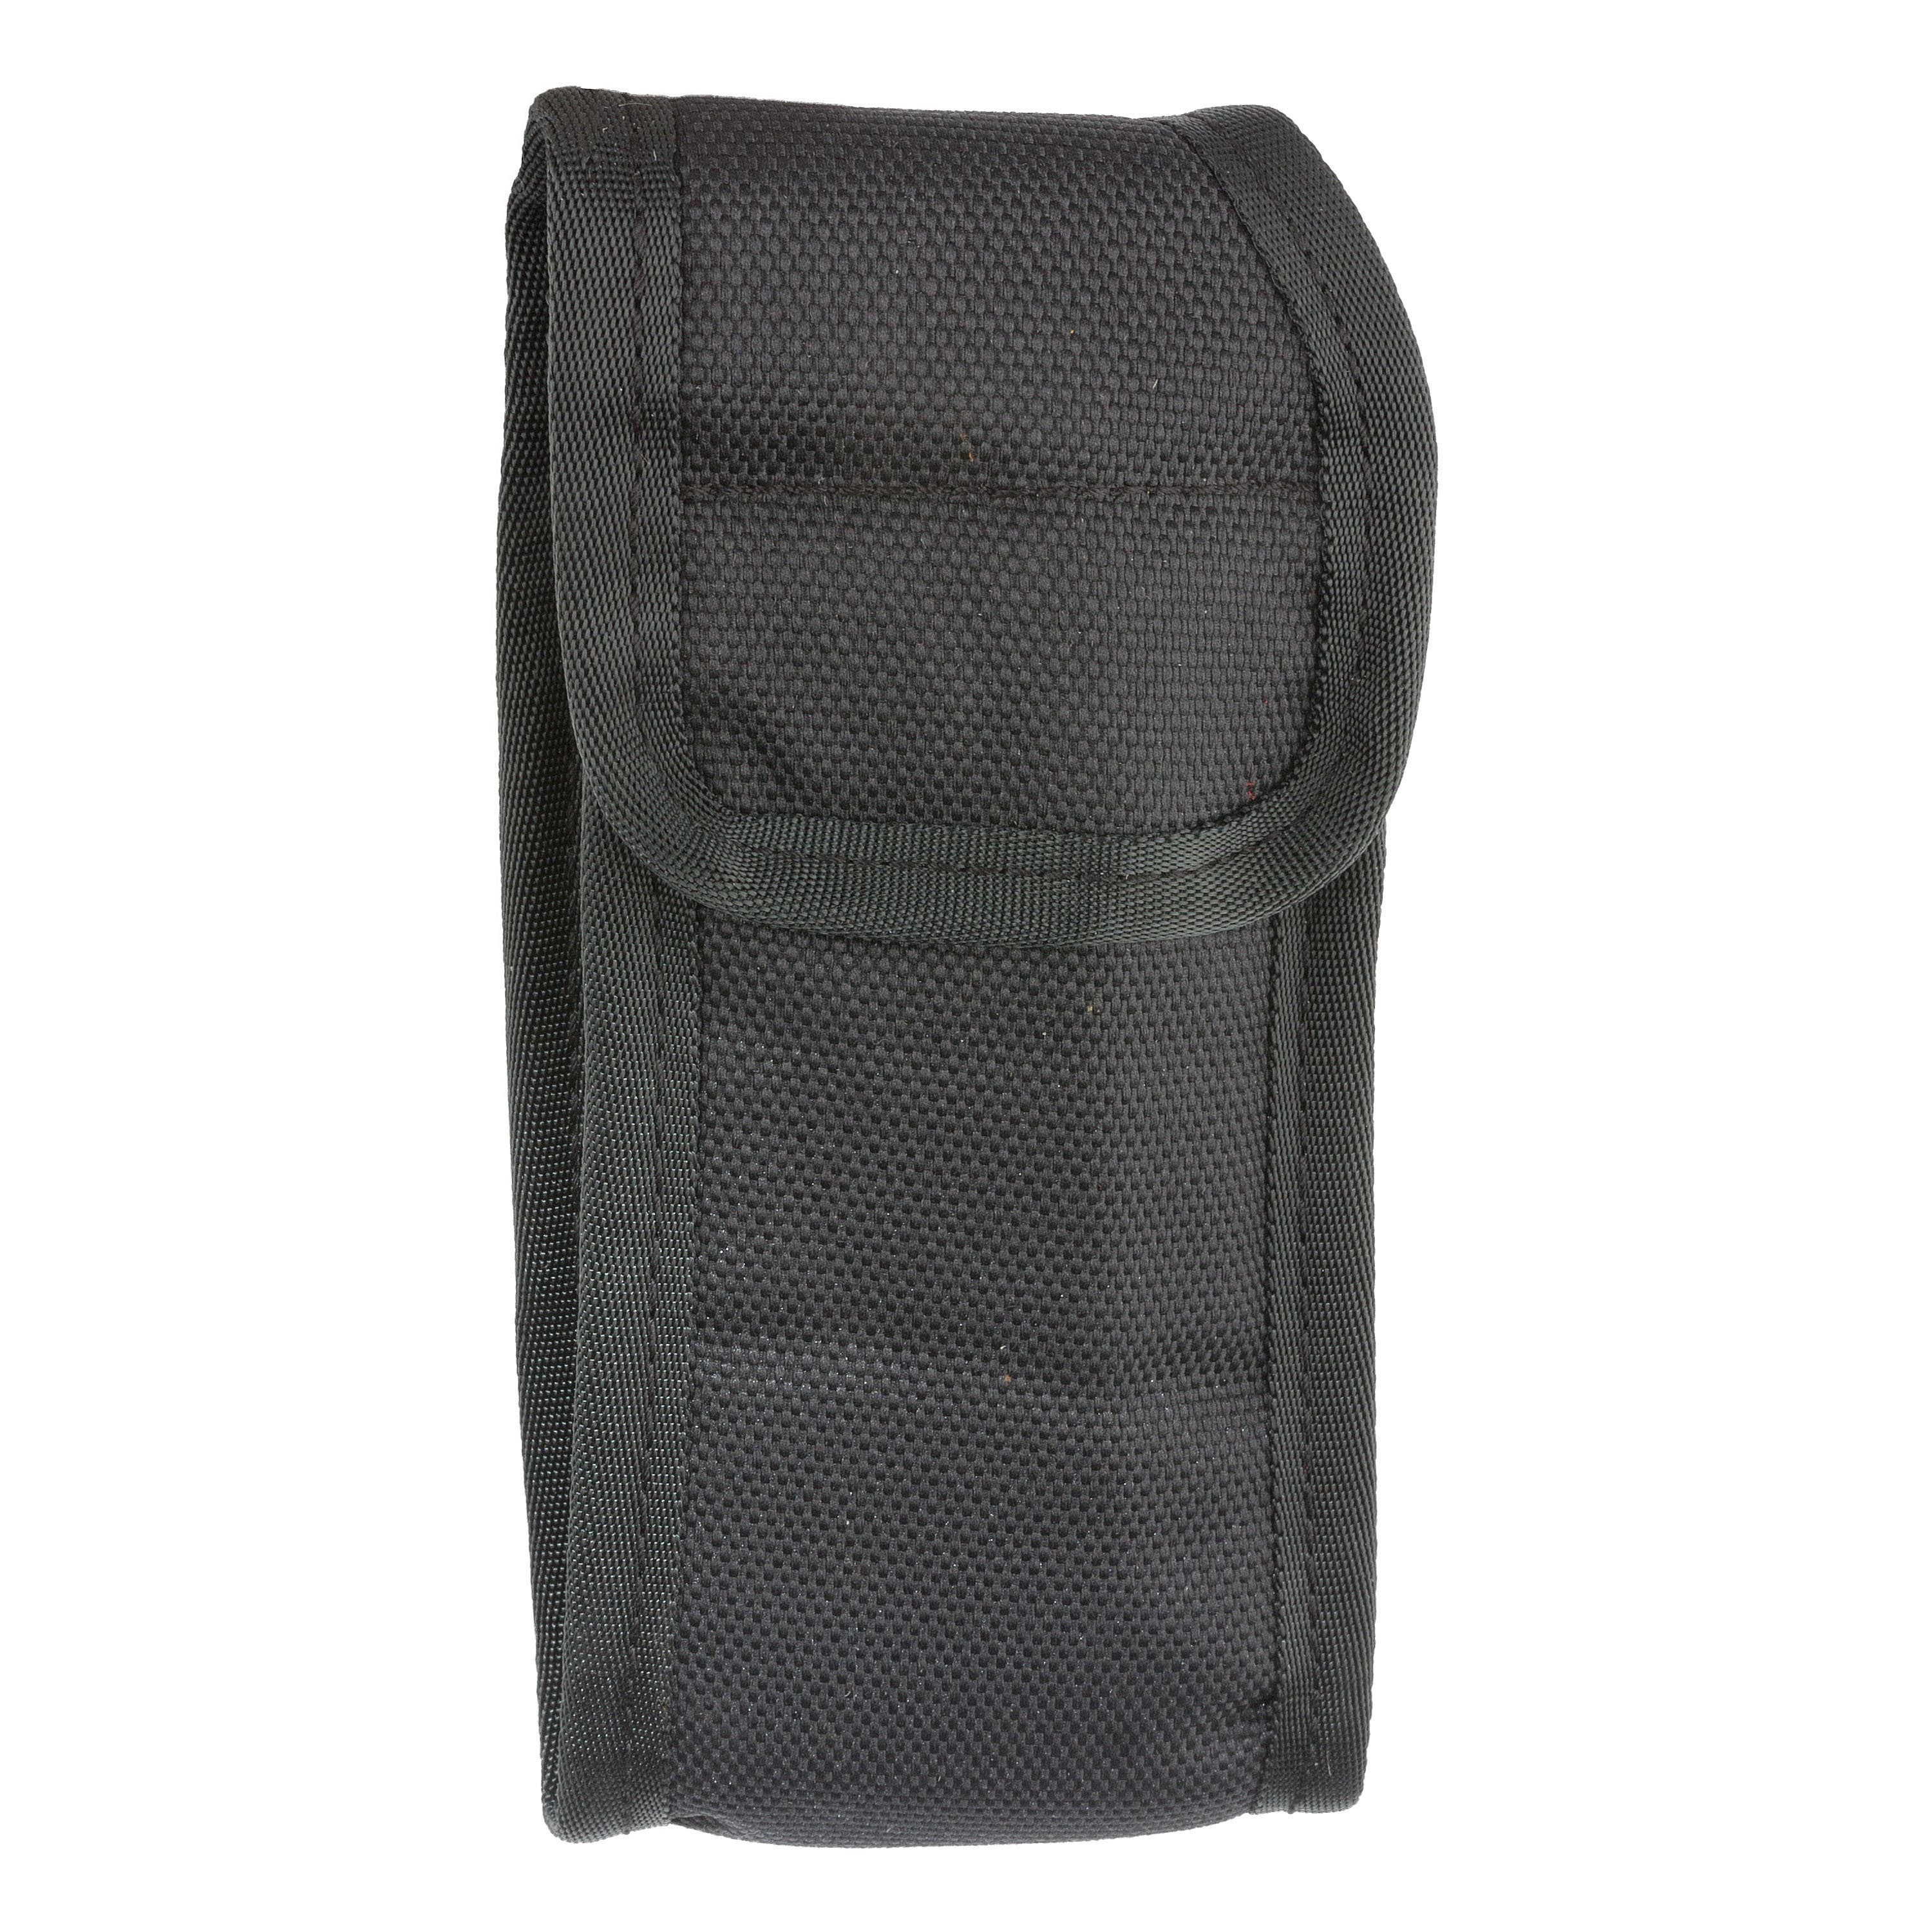 Heim Cellphone Pouch Large black